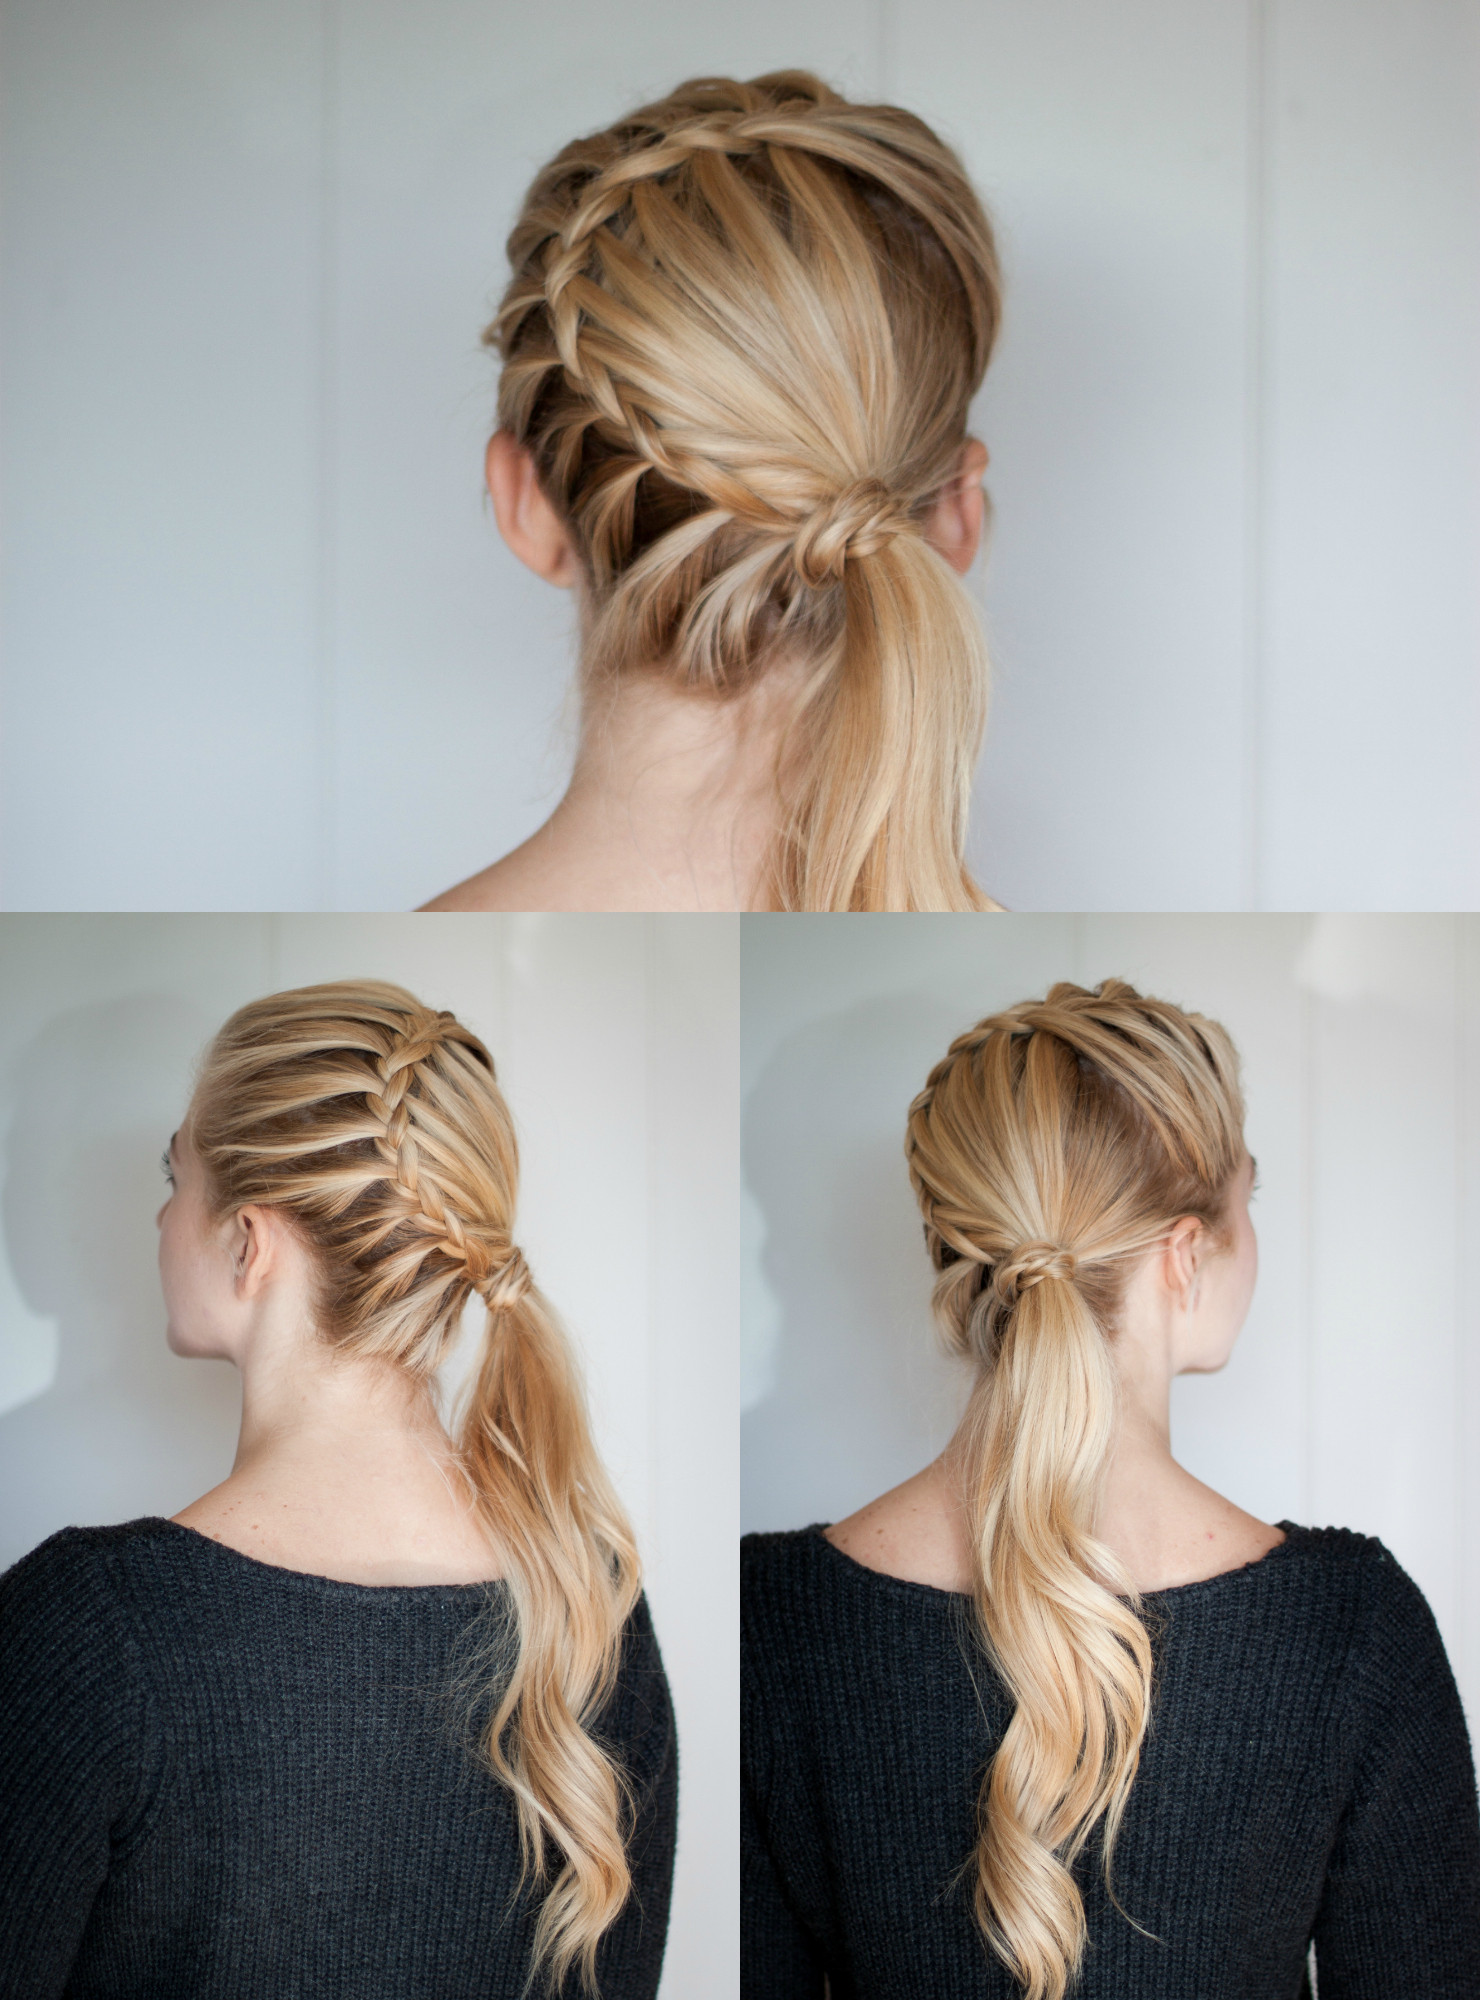 Best ideas about Cute Date Hairstyles . Save or Pin 5 Date Night Hairstyles Now.